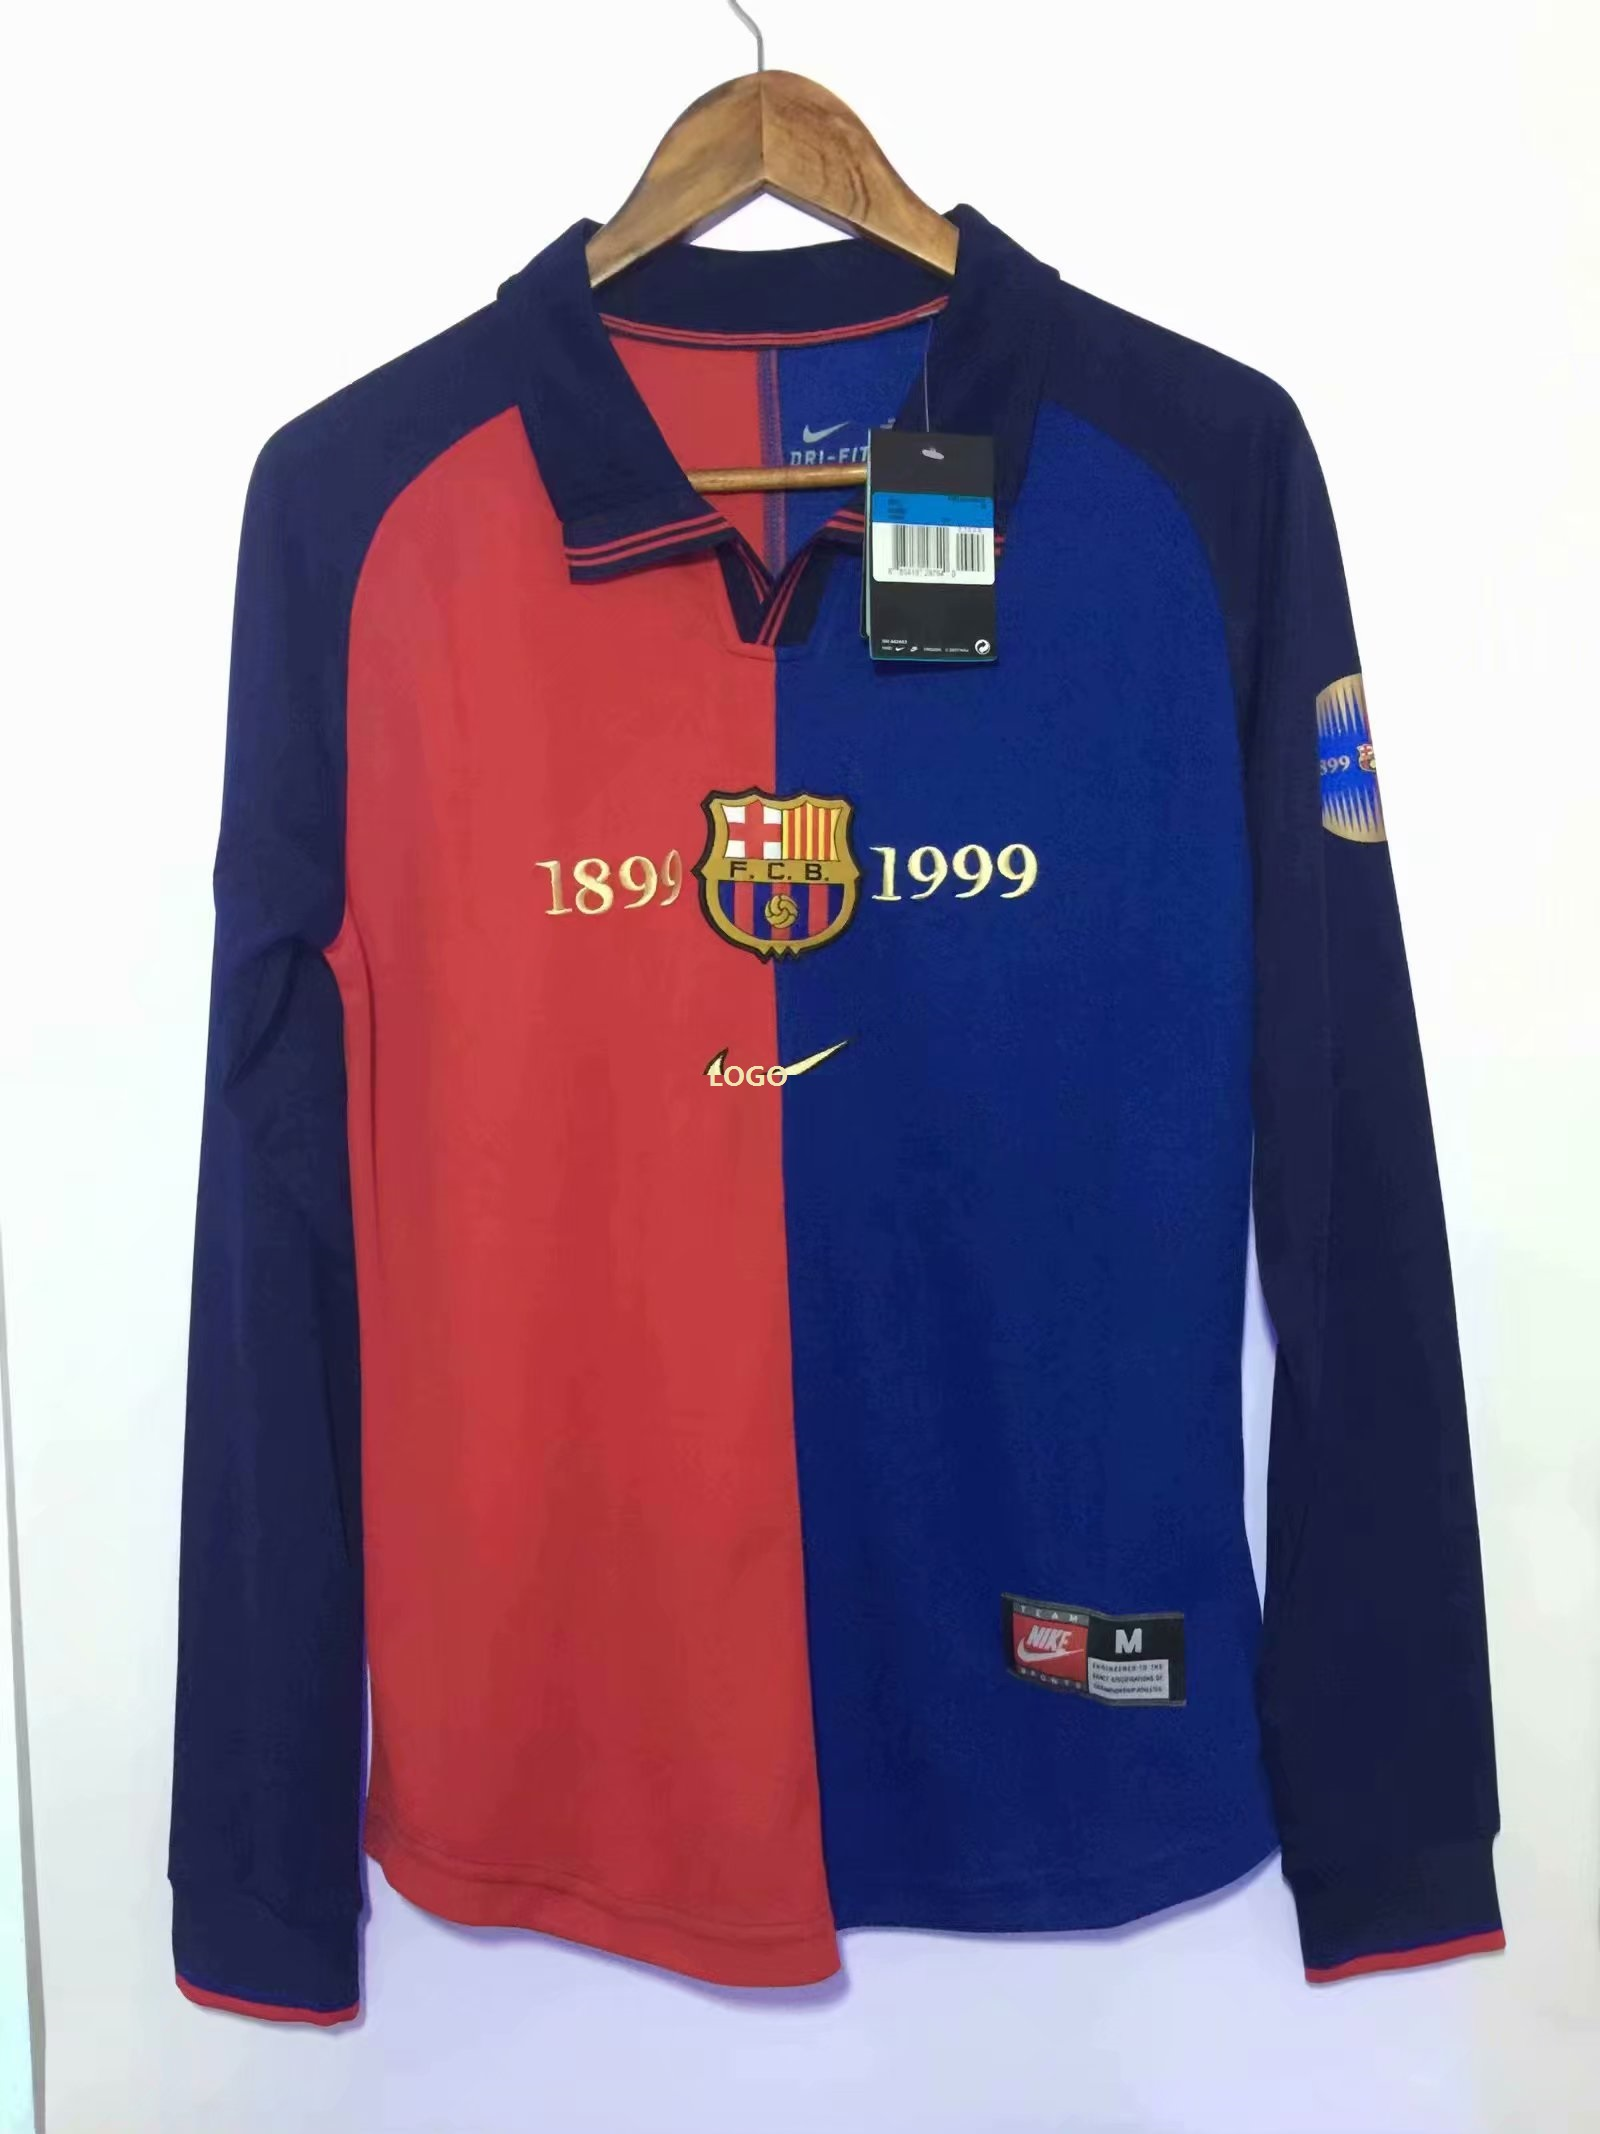 Retro Jerseys Men 1899 1999 Barcelona Retro 100 Years Jersey Long Sleeve Soccer Jersey